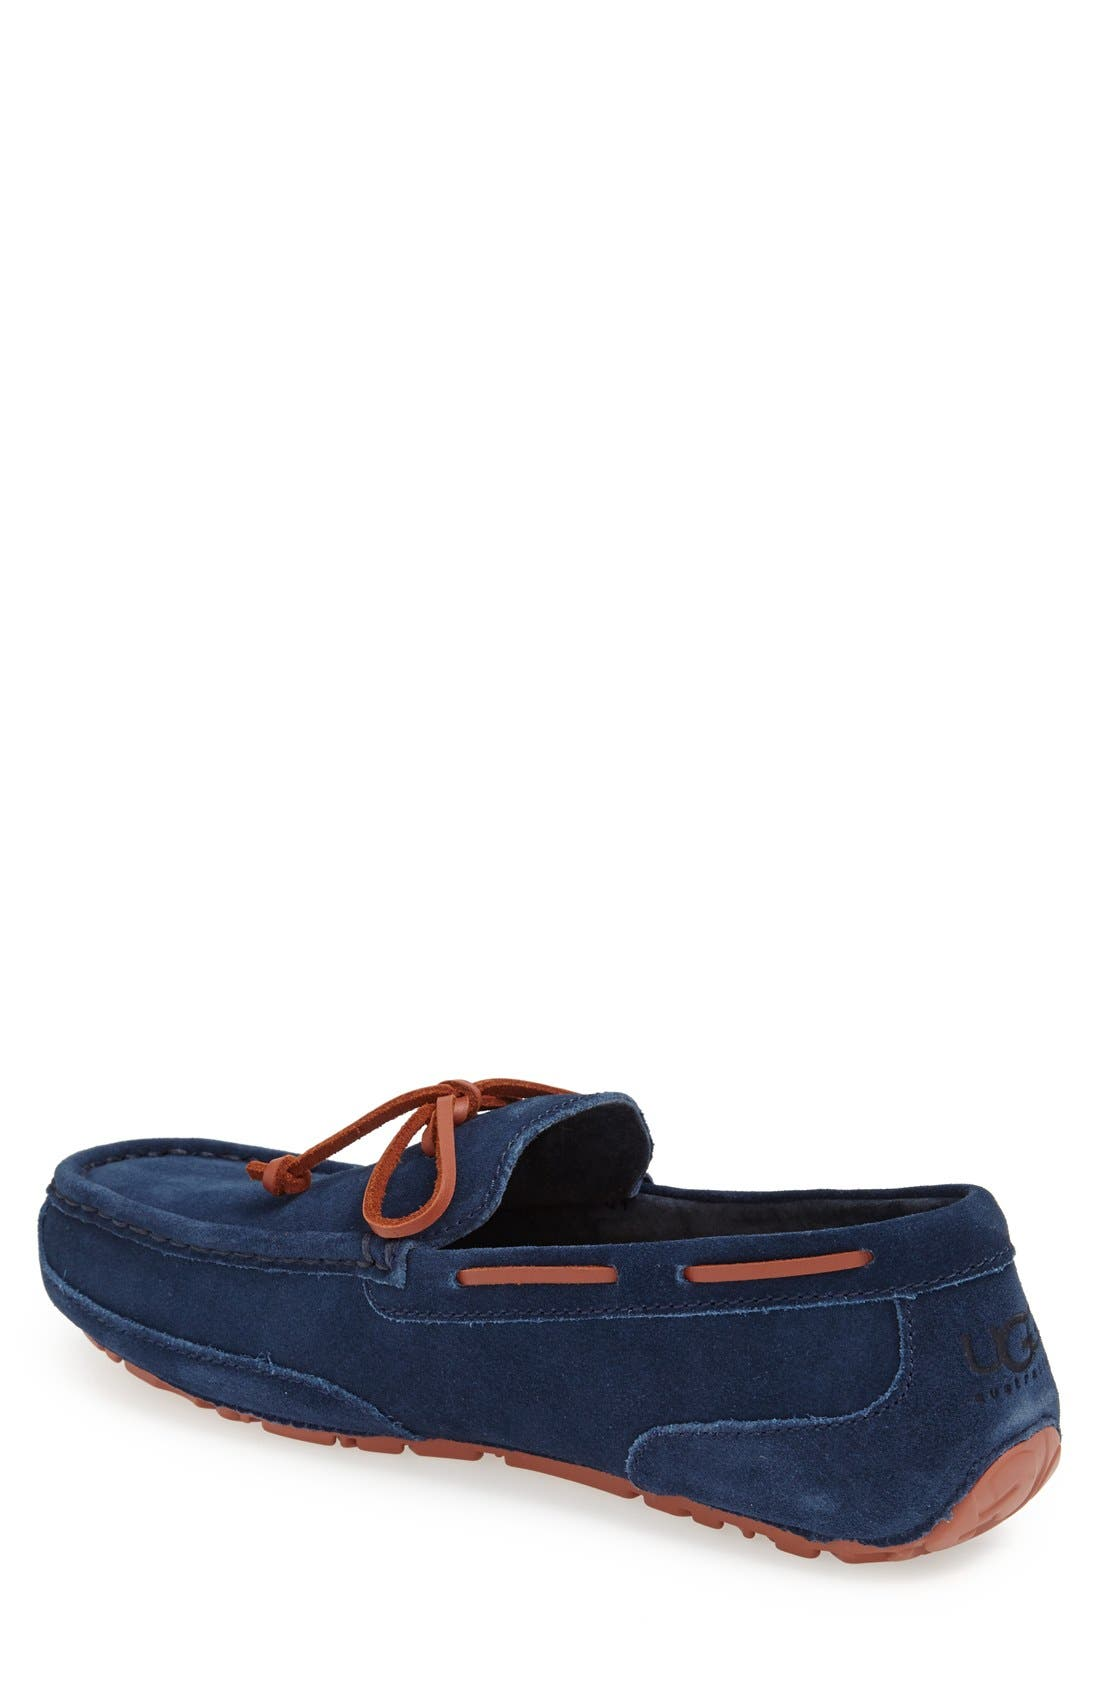 'Chester' Driving Loafer,                             Alternate thumbnail 17, color,